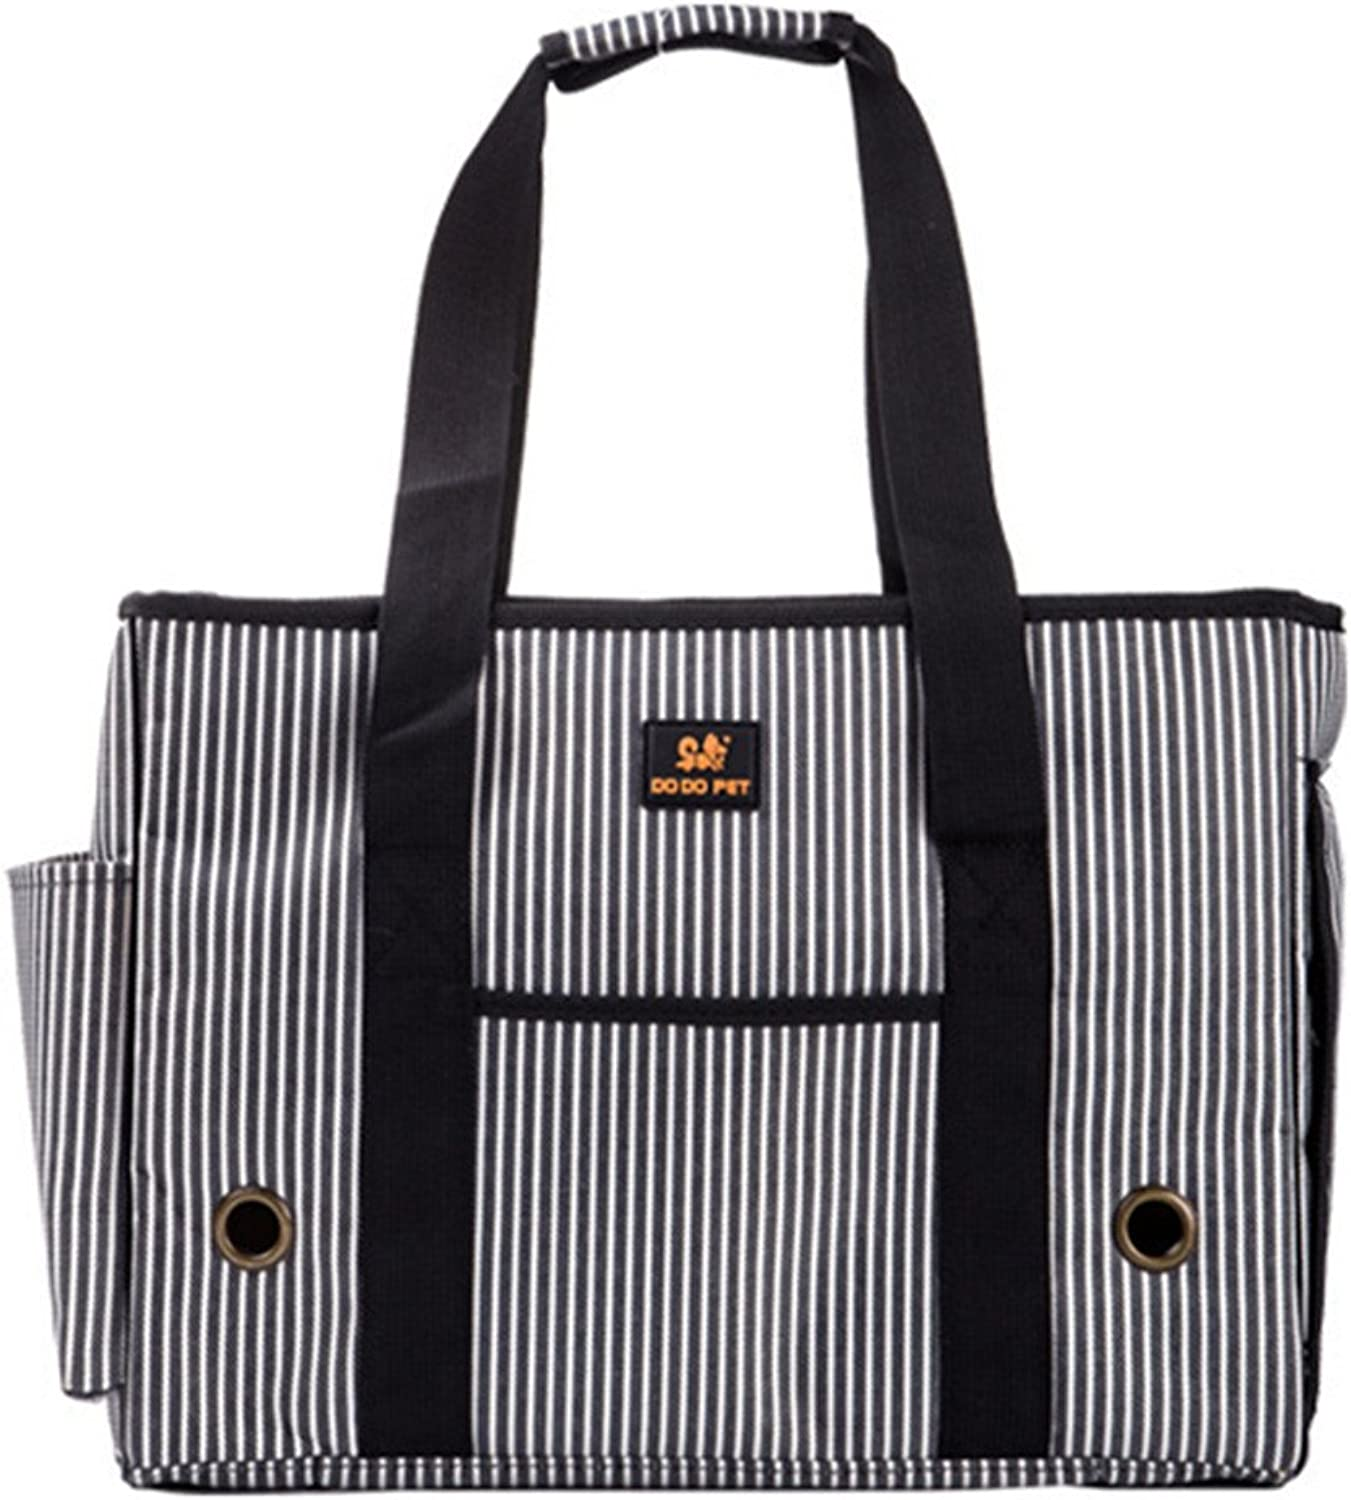 KAIPet dog package single out shoulder bag carrying case package can be folded breathable,39X18X29cm,White stripes